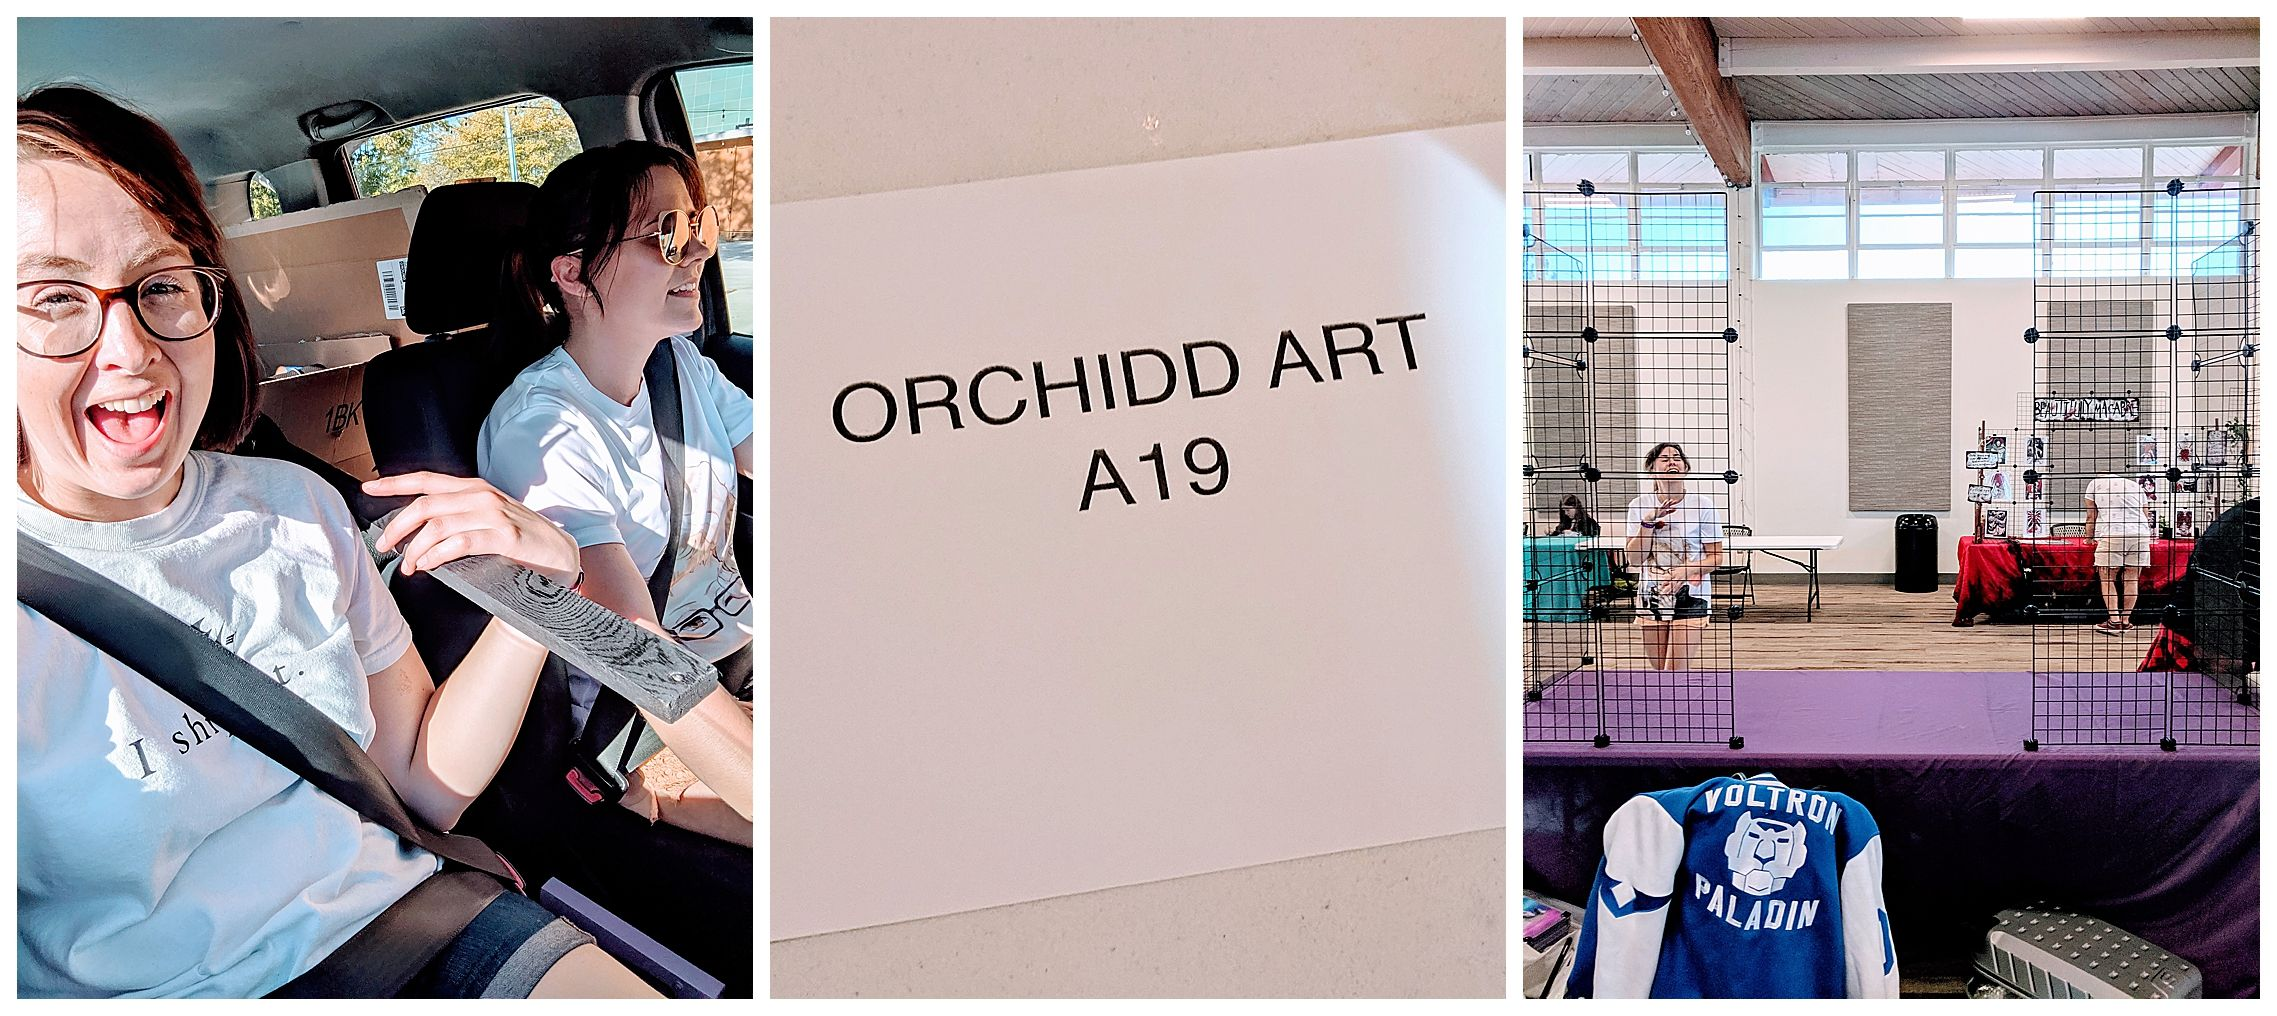 Sign reading '0rchidd art A19' laying on a artist's booth table in an empty room